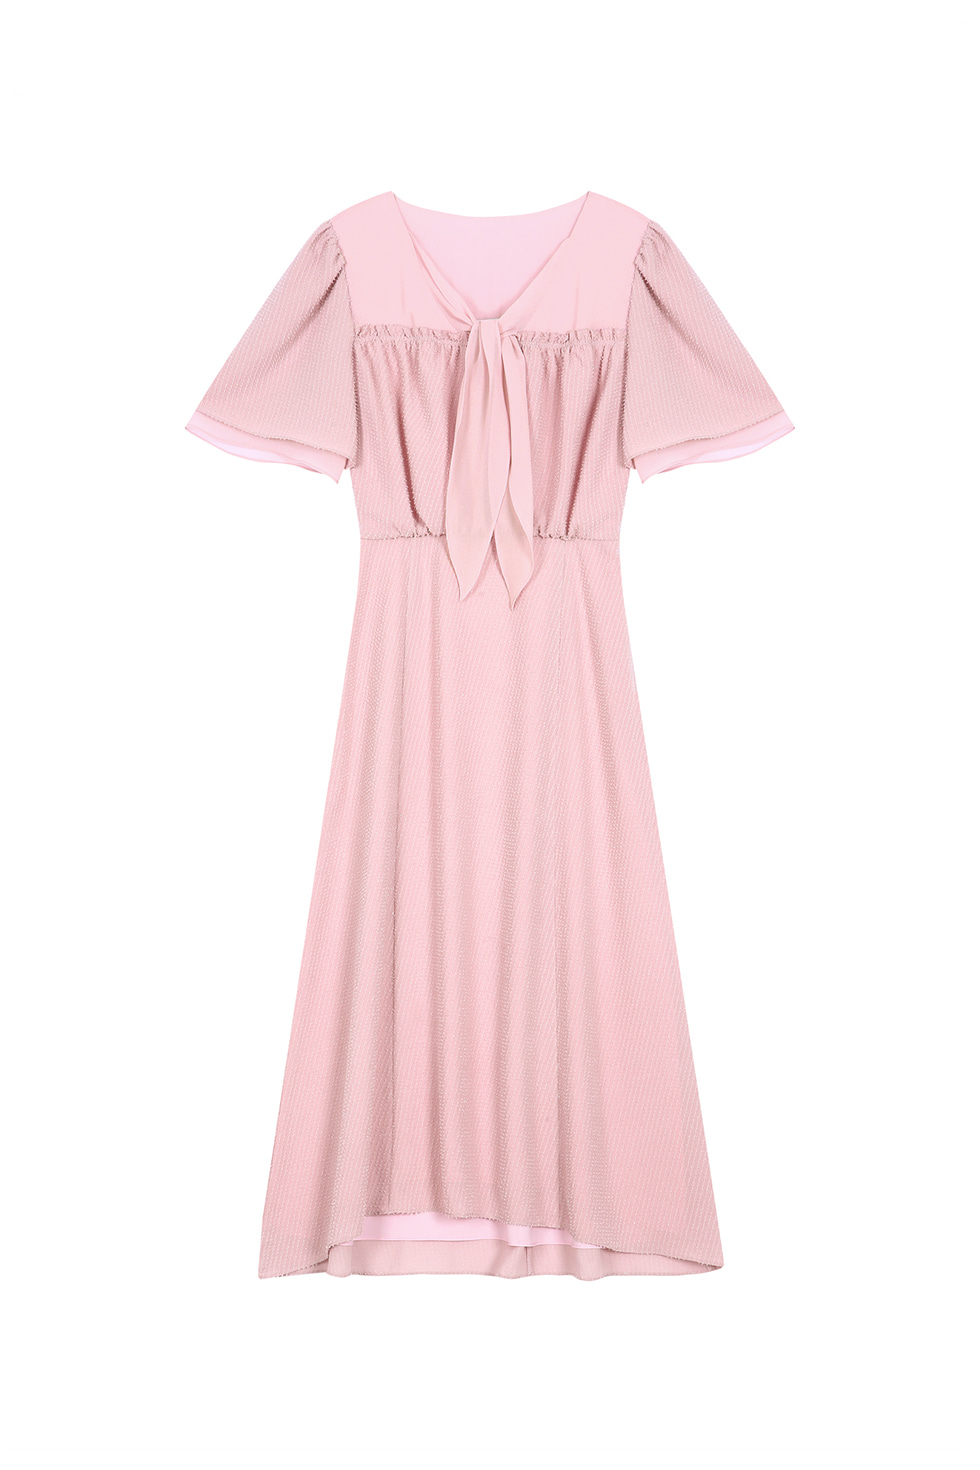 LAYERED CHIFFON DRESS - PINK